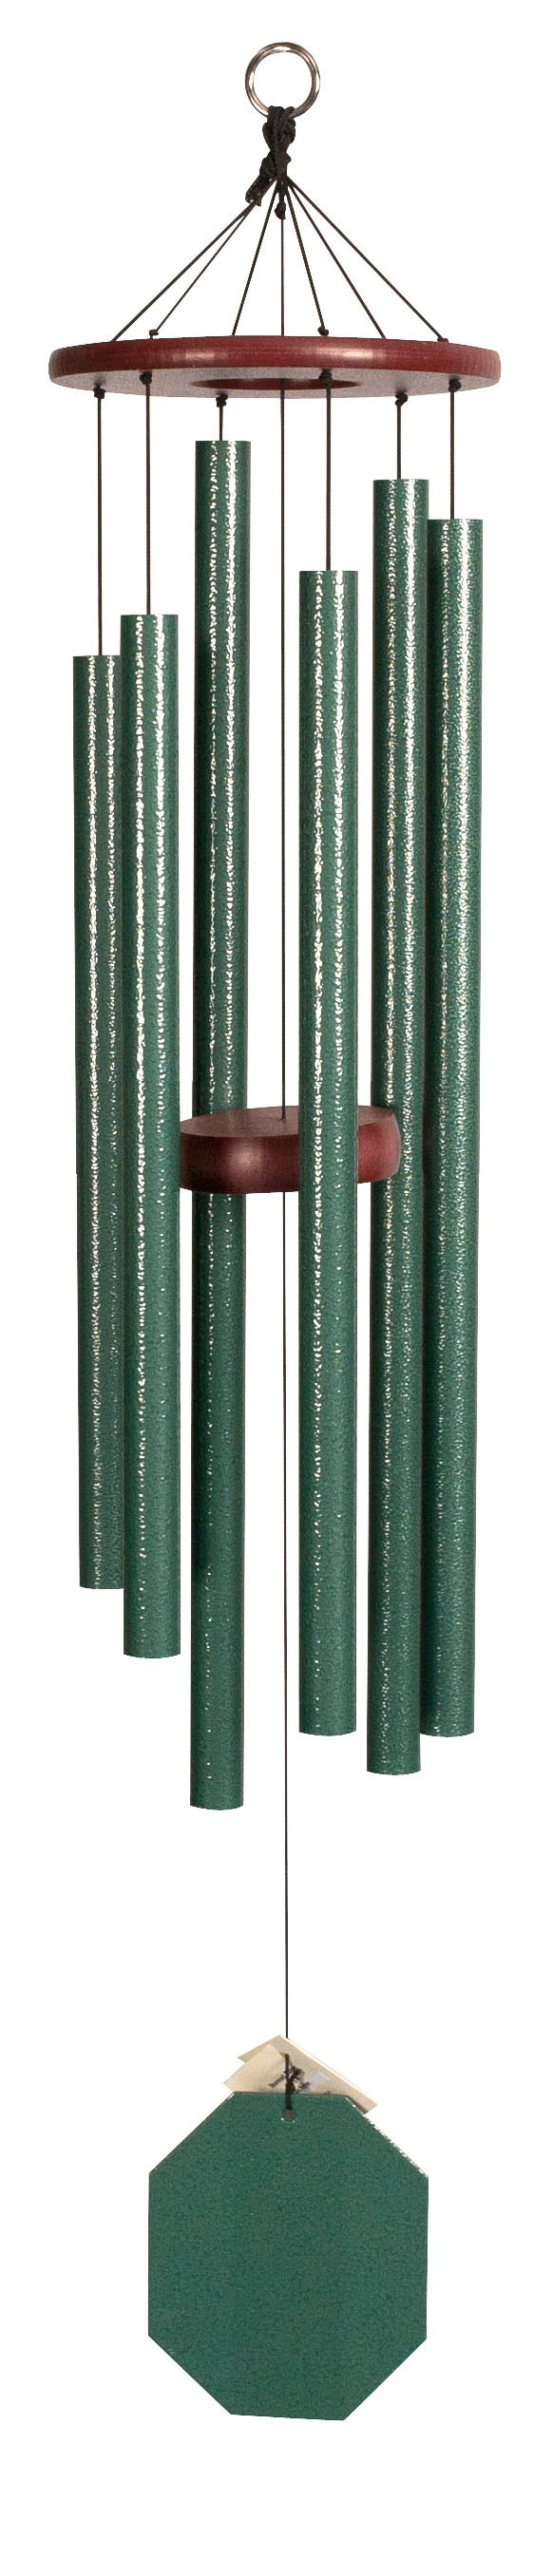 Amish Wind Chimes | Evergreen Series